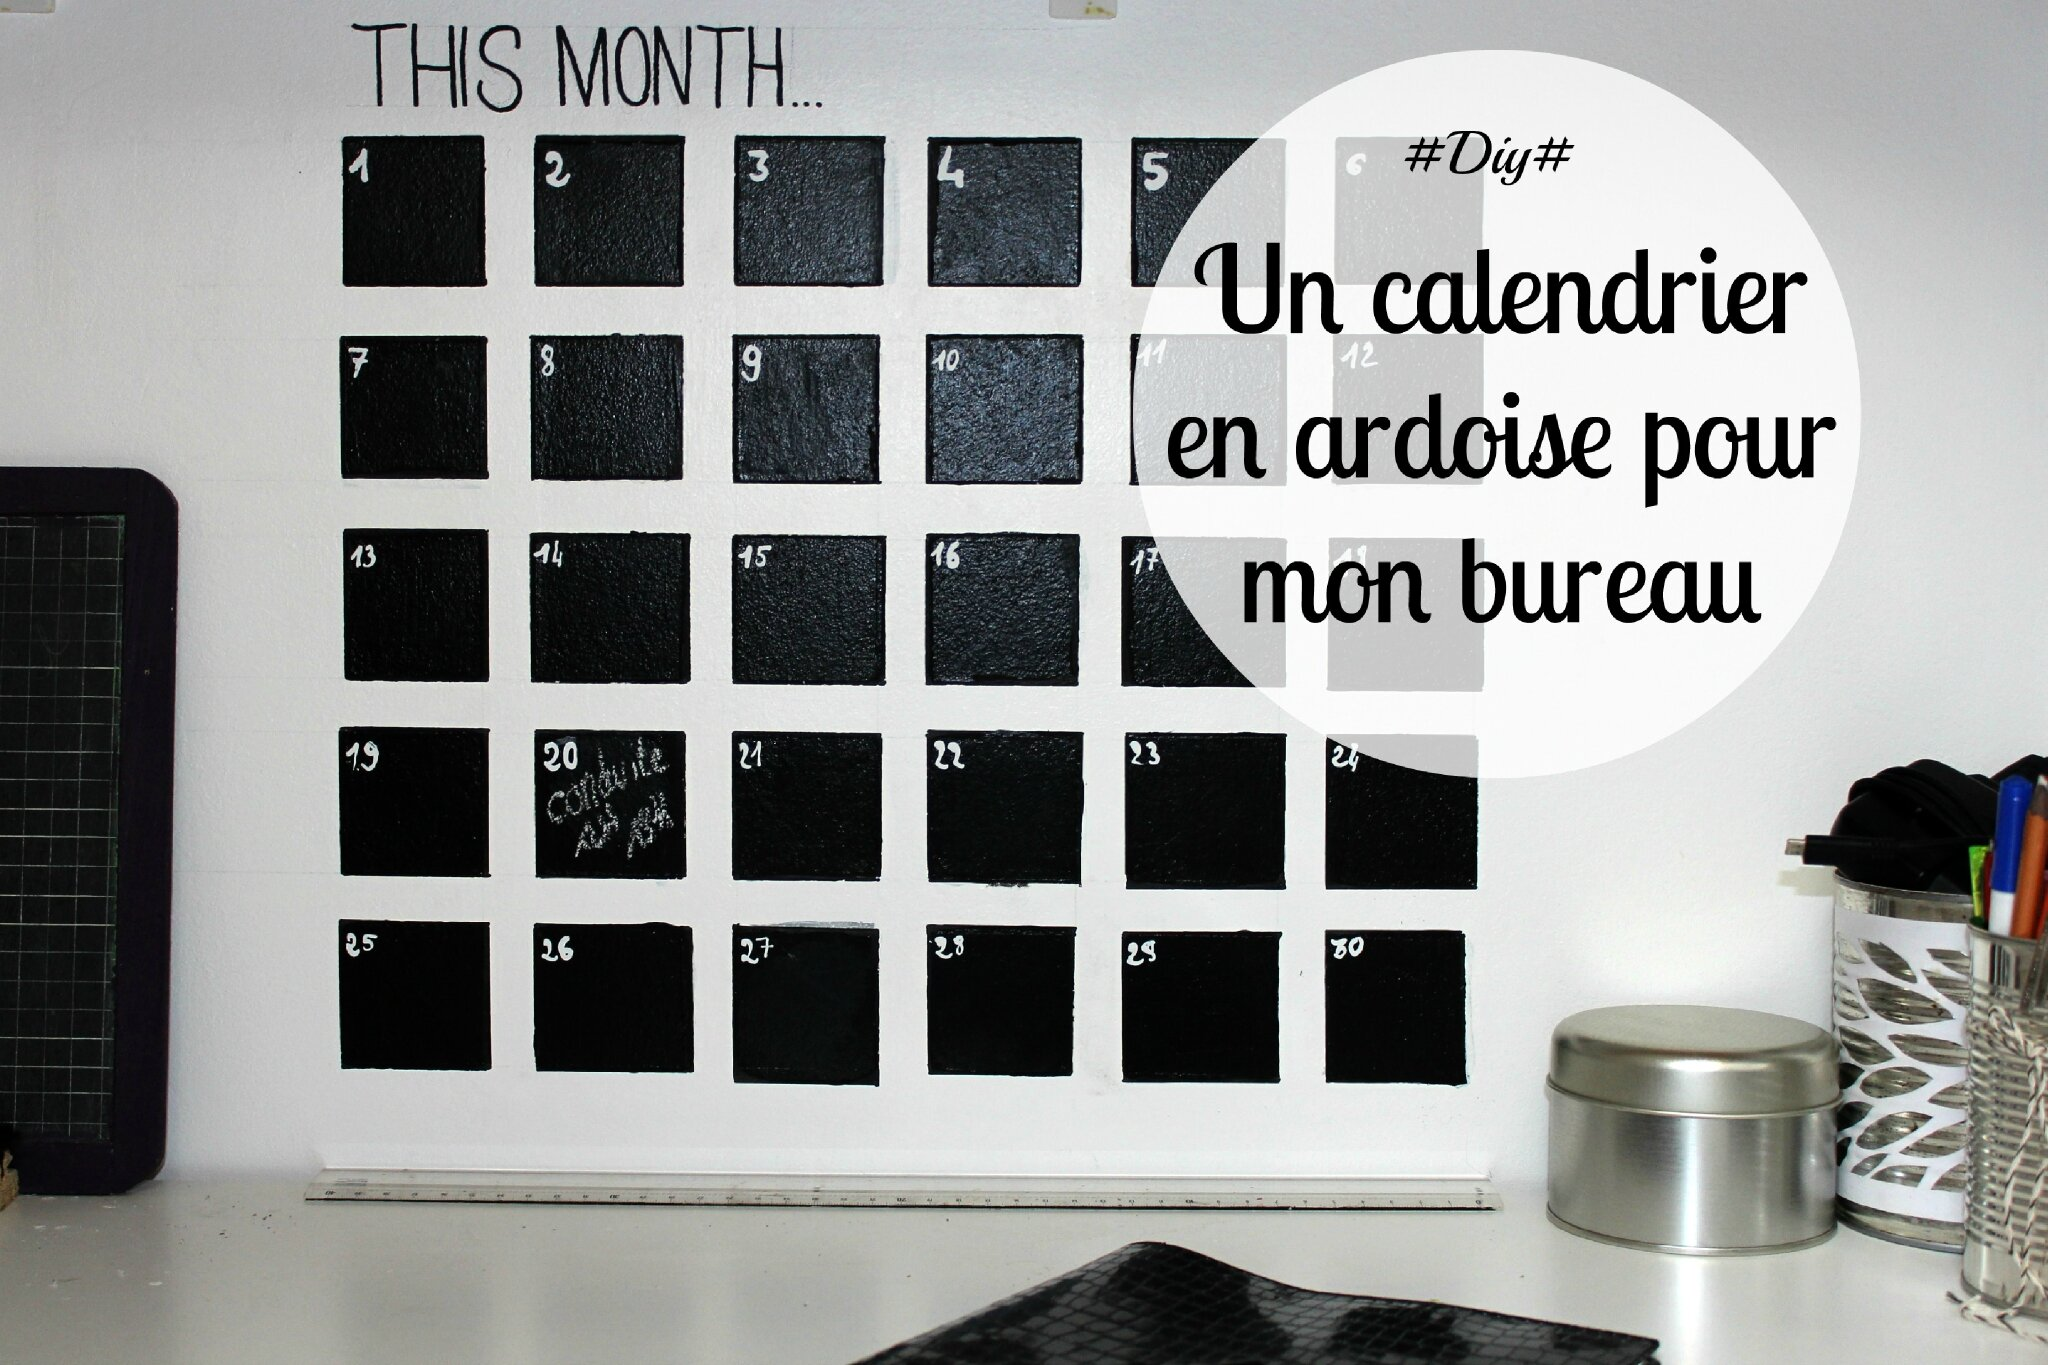 ch 6 un calendrier en ardoise pour mon bureau blog d coration diy photographie made by. Black Bedroom Furniture Sets. Home Design Ideas